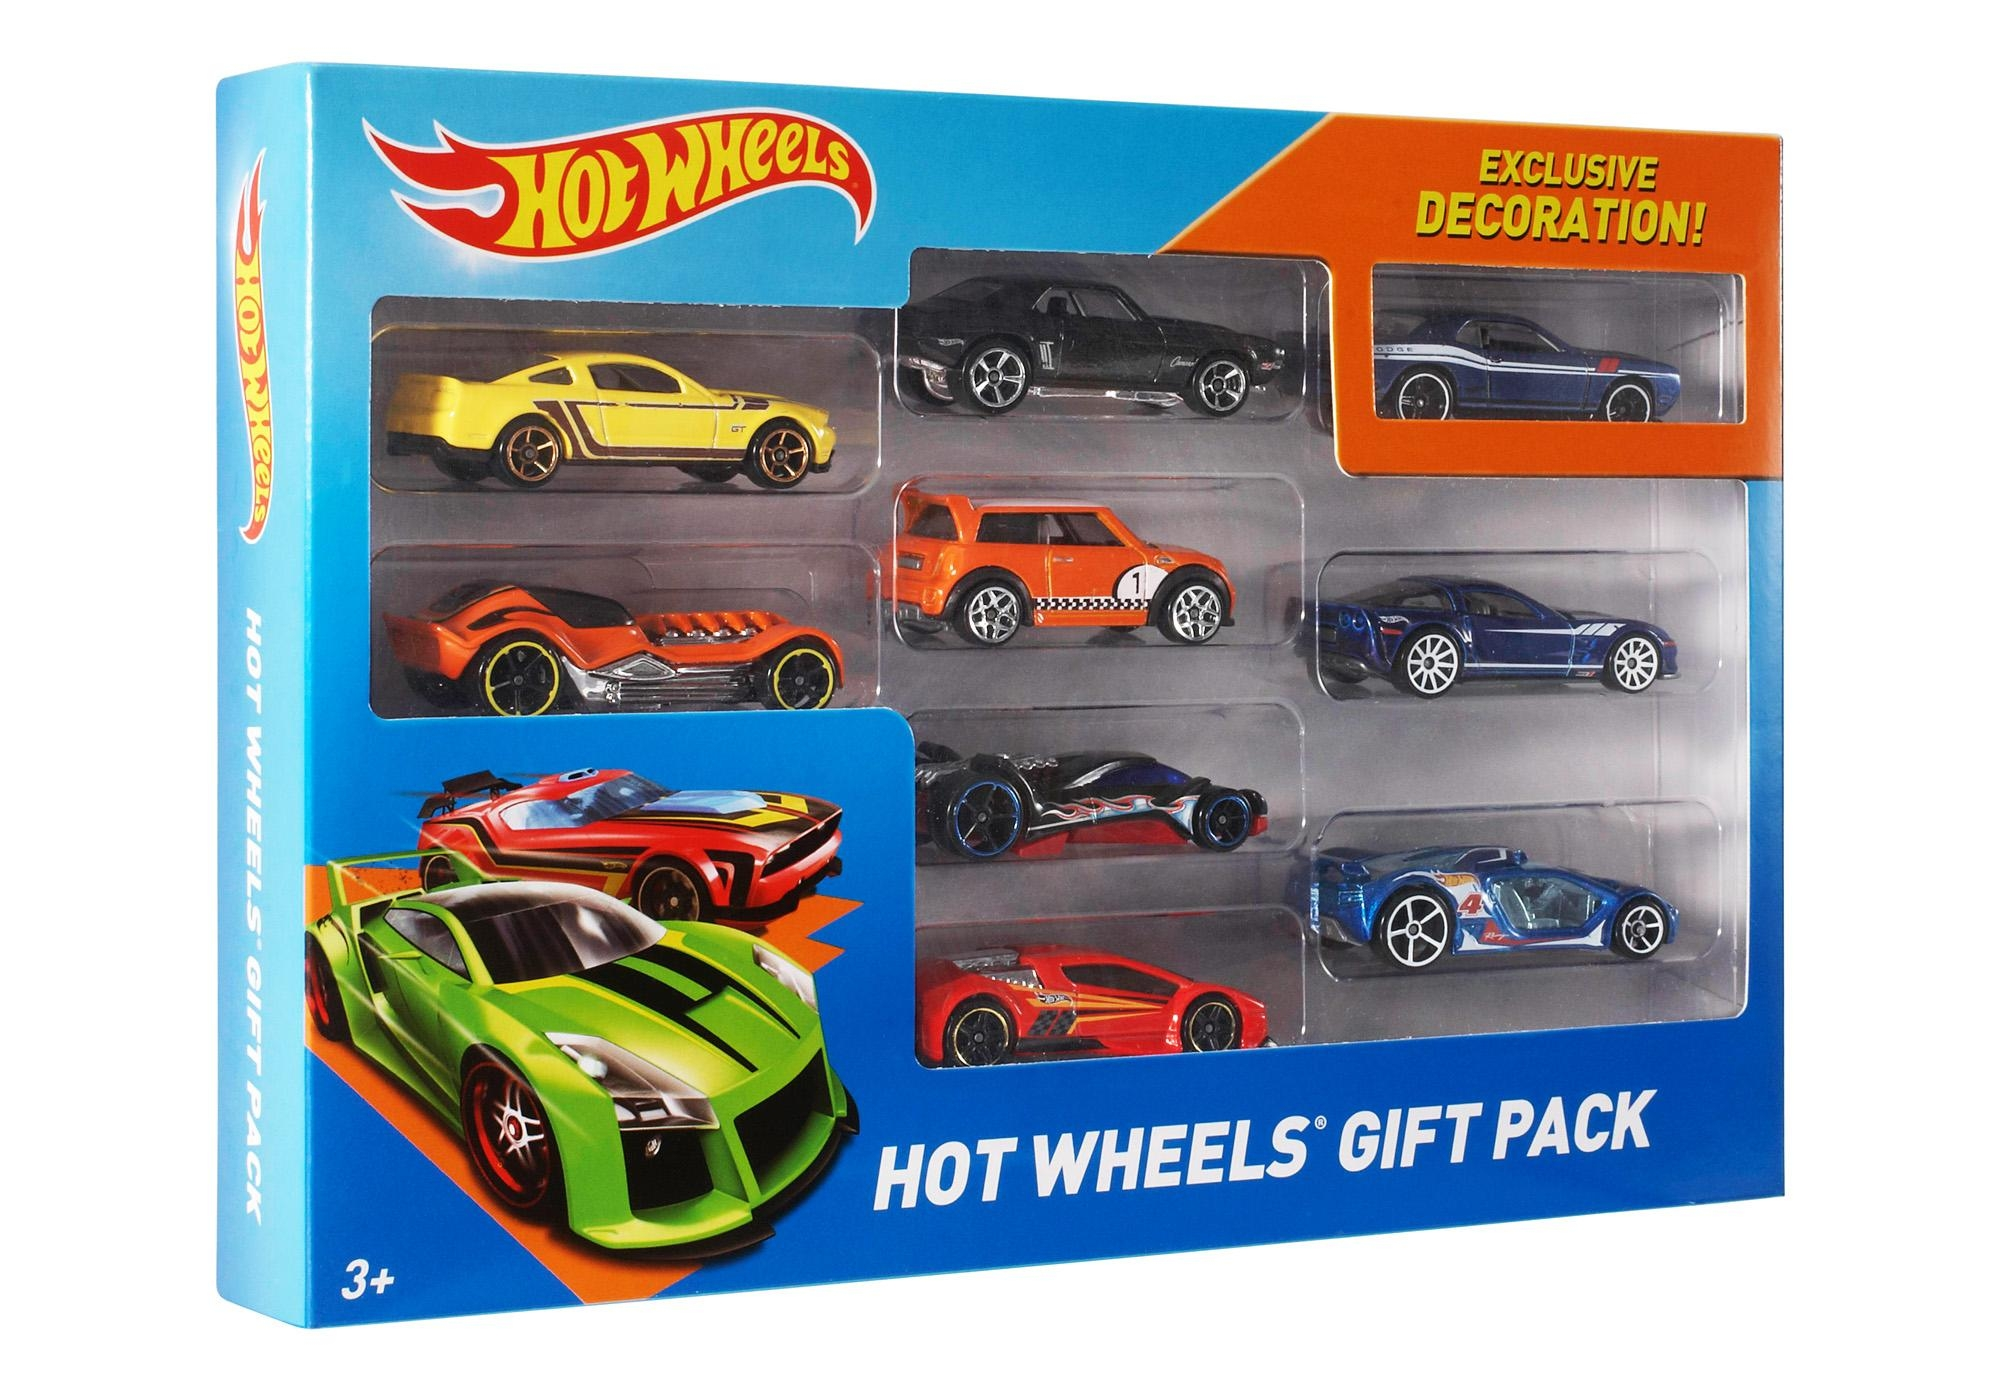 Hot Wheels 9 Die Cast Car Gift Pack (Styles May Vary) – Walmart With Regard To Hot Wheels Wall Art (Image 13 of 20)